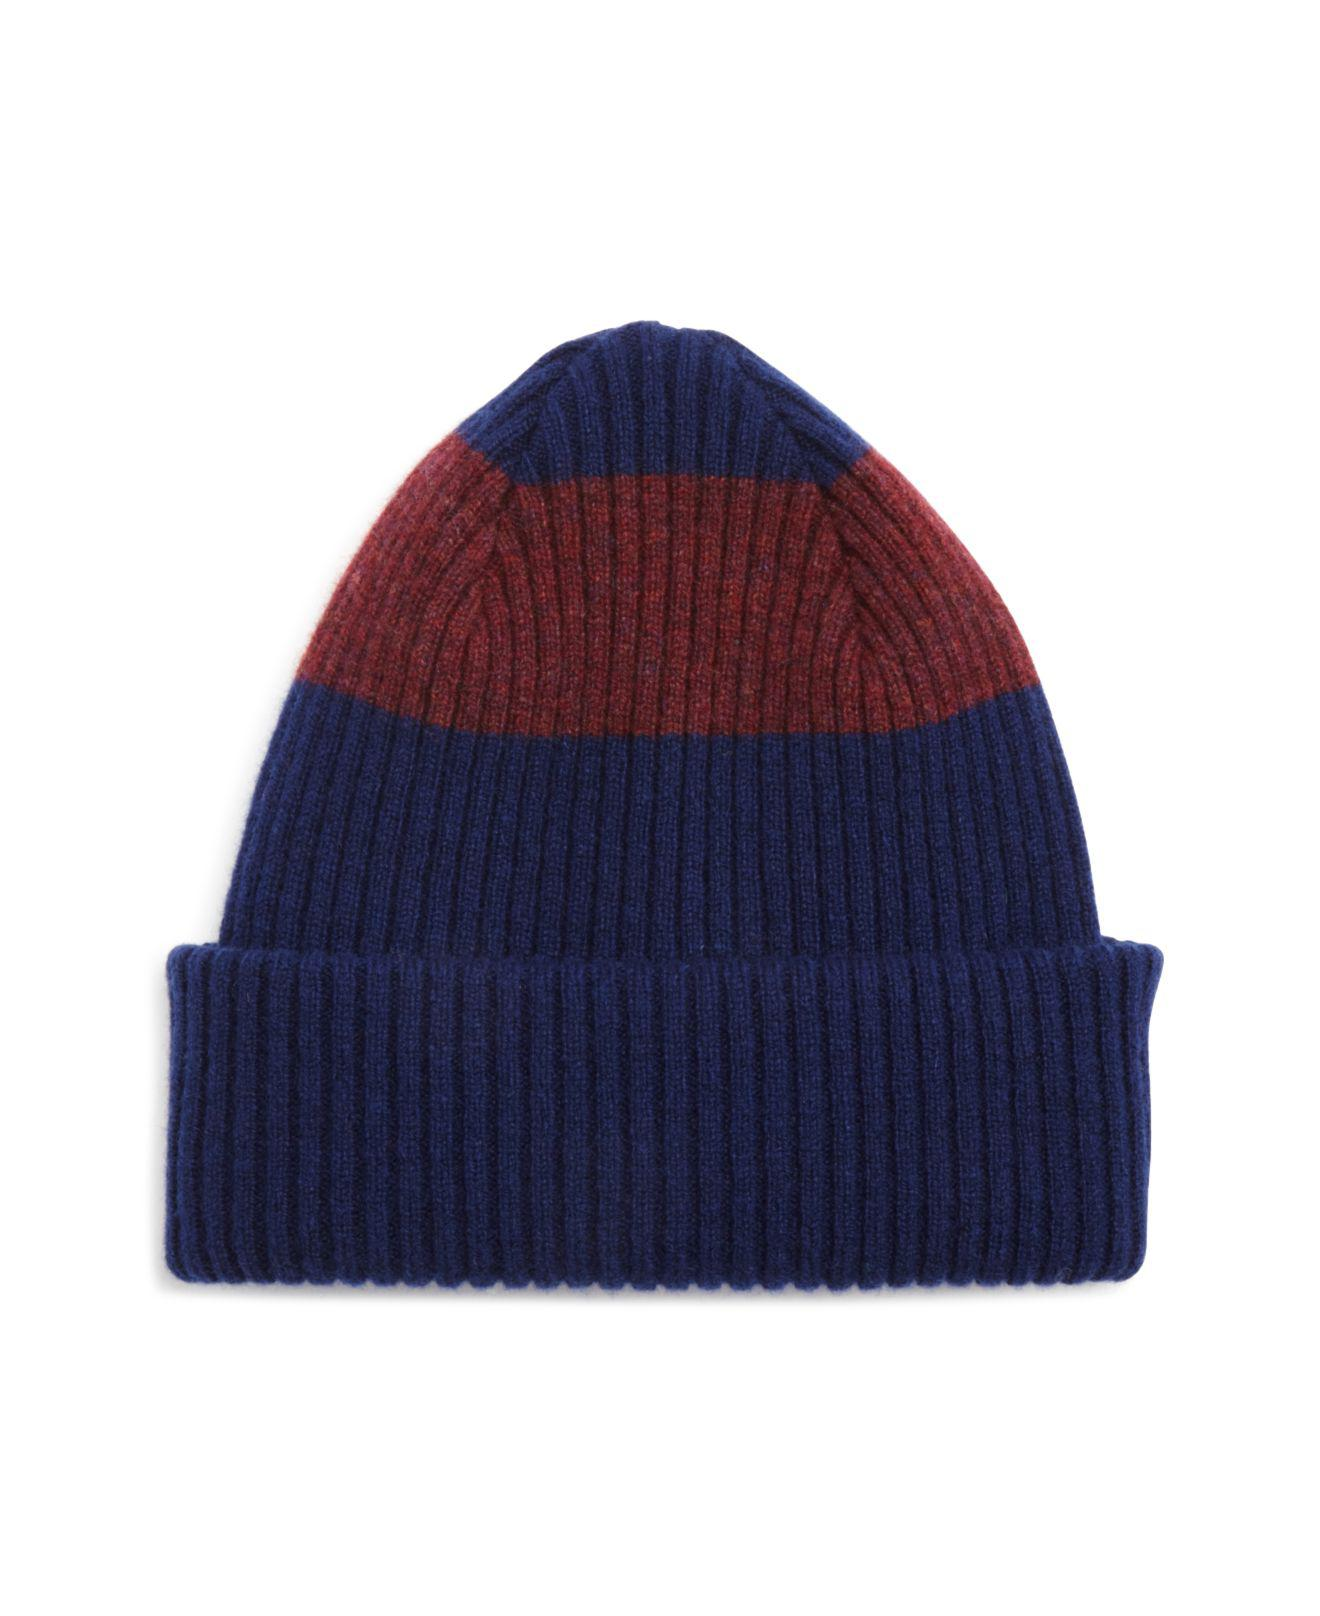 Ribbed-knit lambswool beanie hat Paul Smith iJt82g7Trx